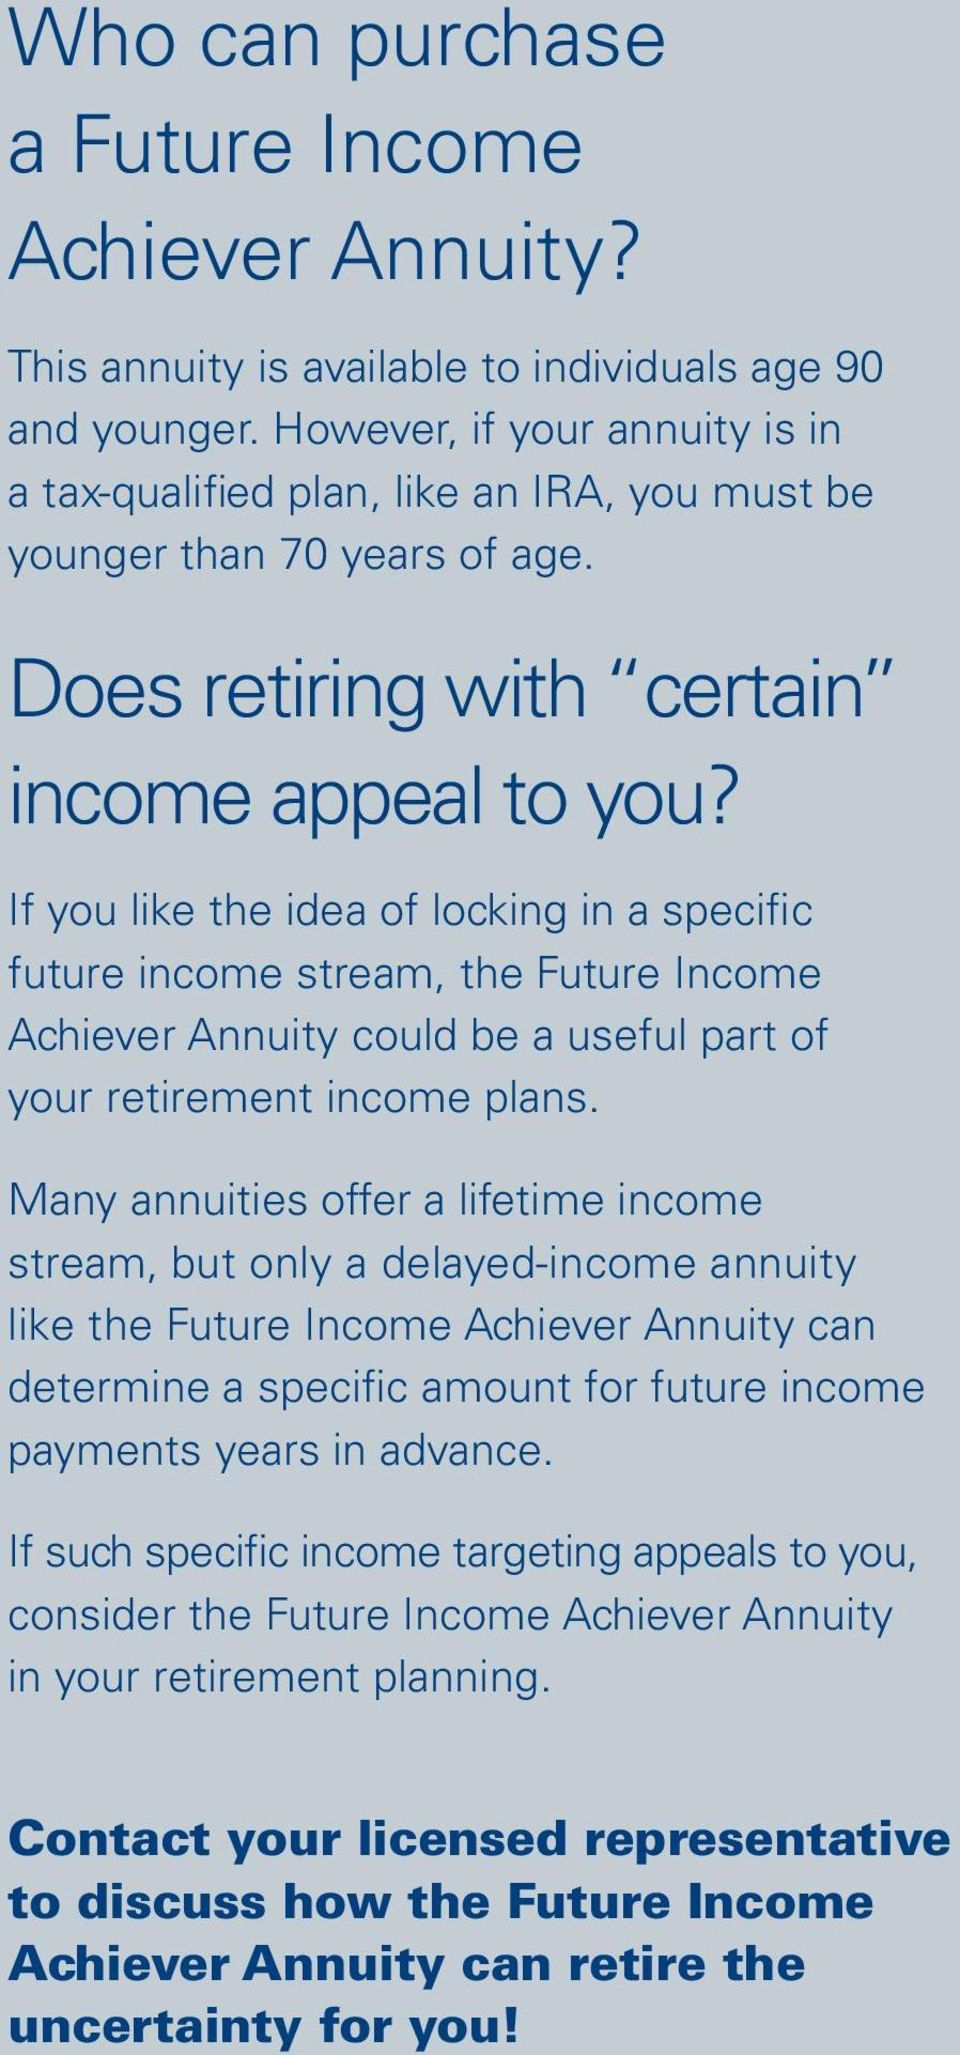 If you like the idea of locking in a specific future income stream, the Future Income Achiever Annuity could be a useful part of your retirement income plans.